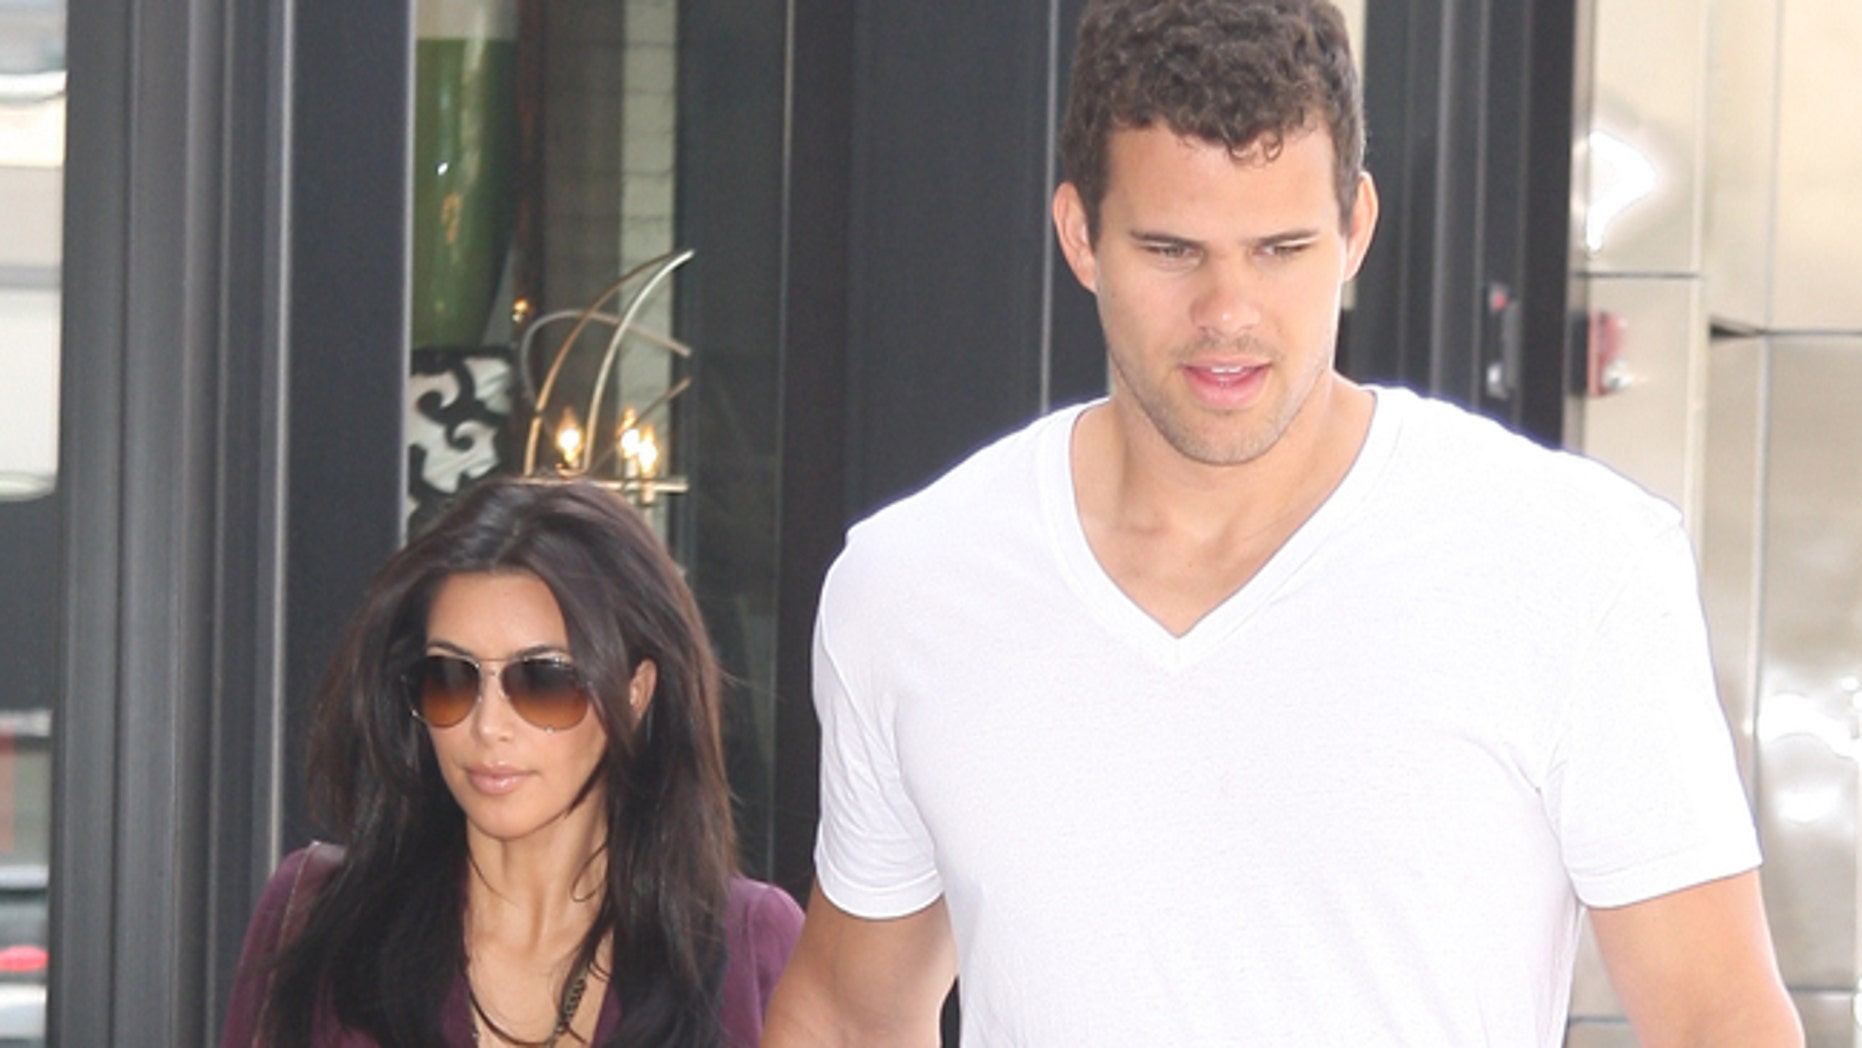 Kim Kardashian and Kris Humphries (X17 Online)